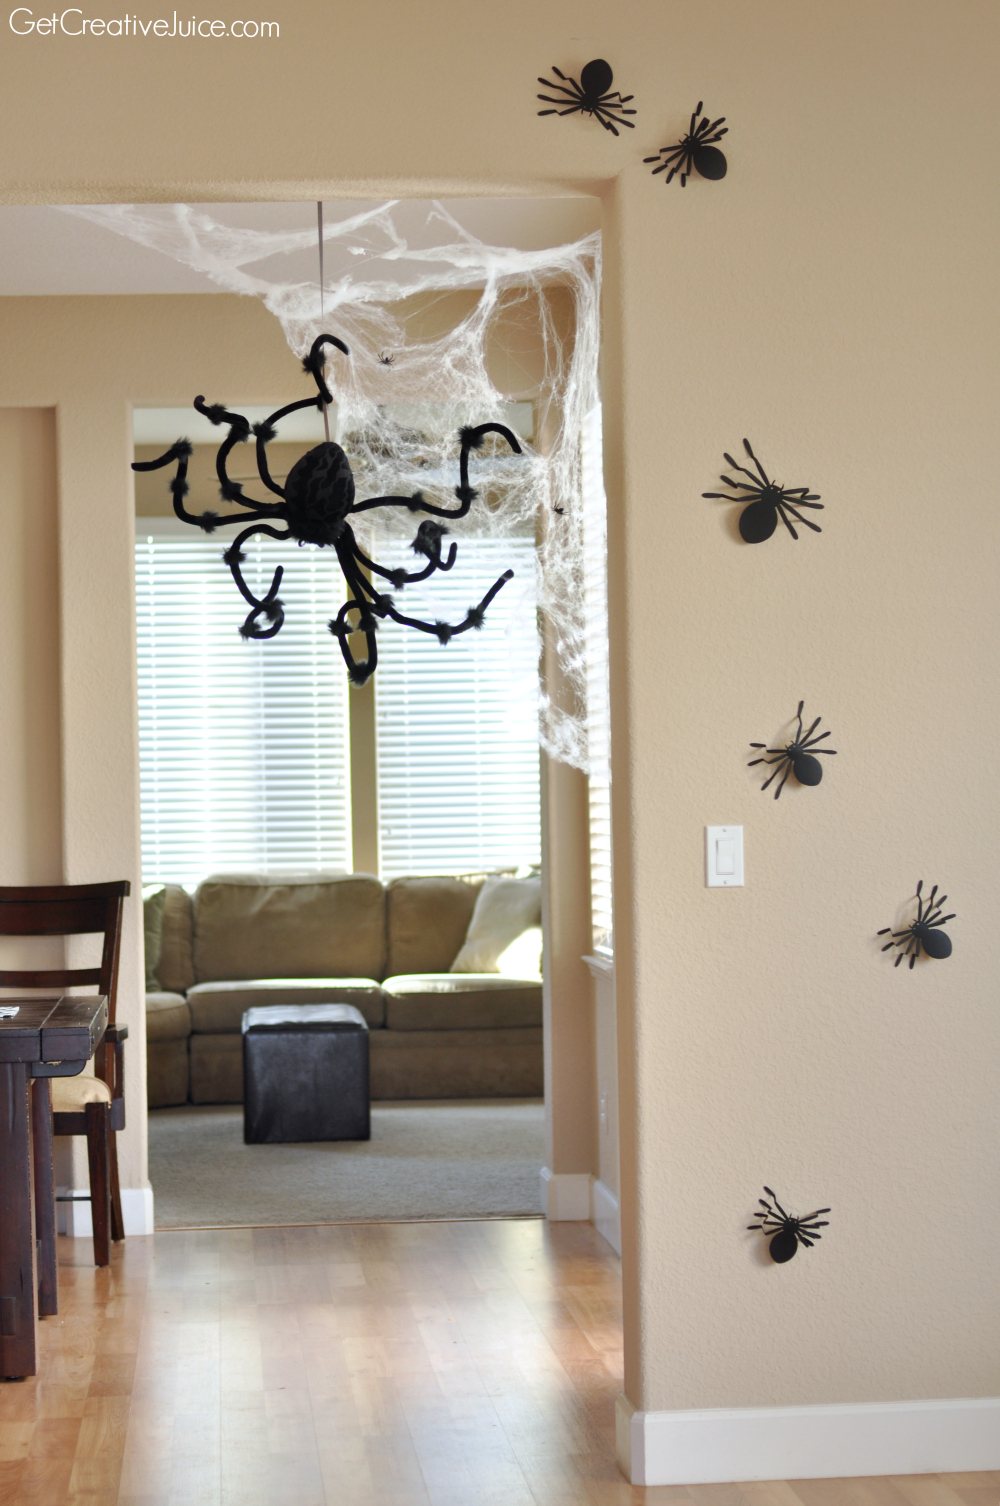 hanging spider web and 3d wall spiders halloween decoration ideas for your home - Halloween Spider Web Decorations